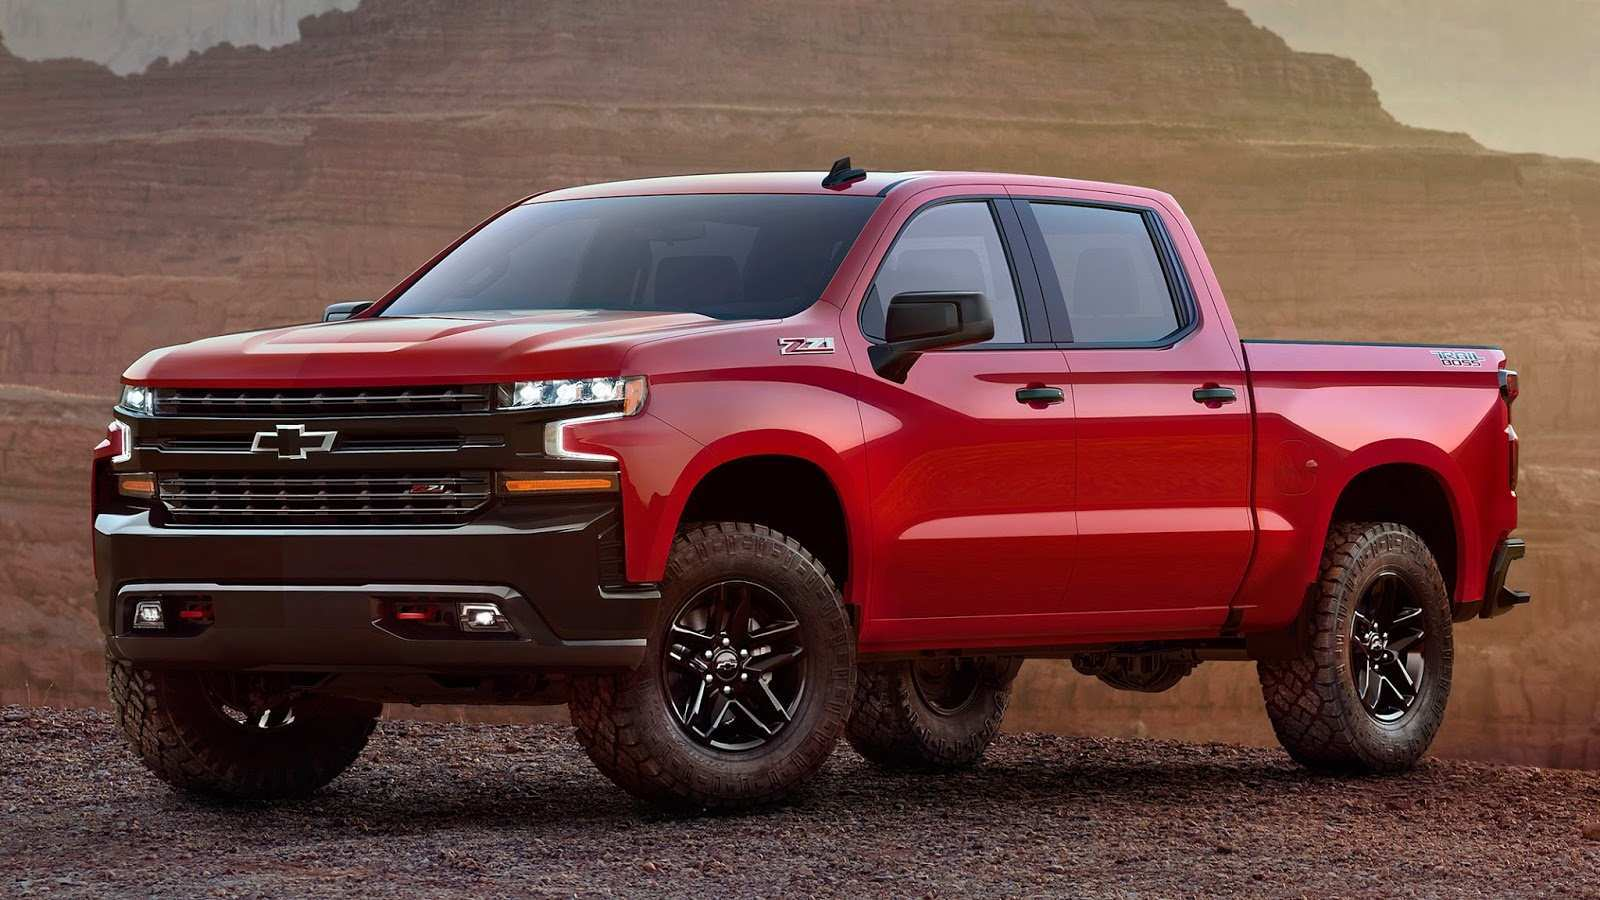 31 All New Chevrolet Silverado 2020 Photoshop Specs by Chevrolet Silverado 2020 Photoshop